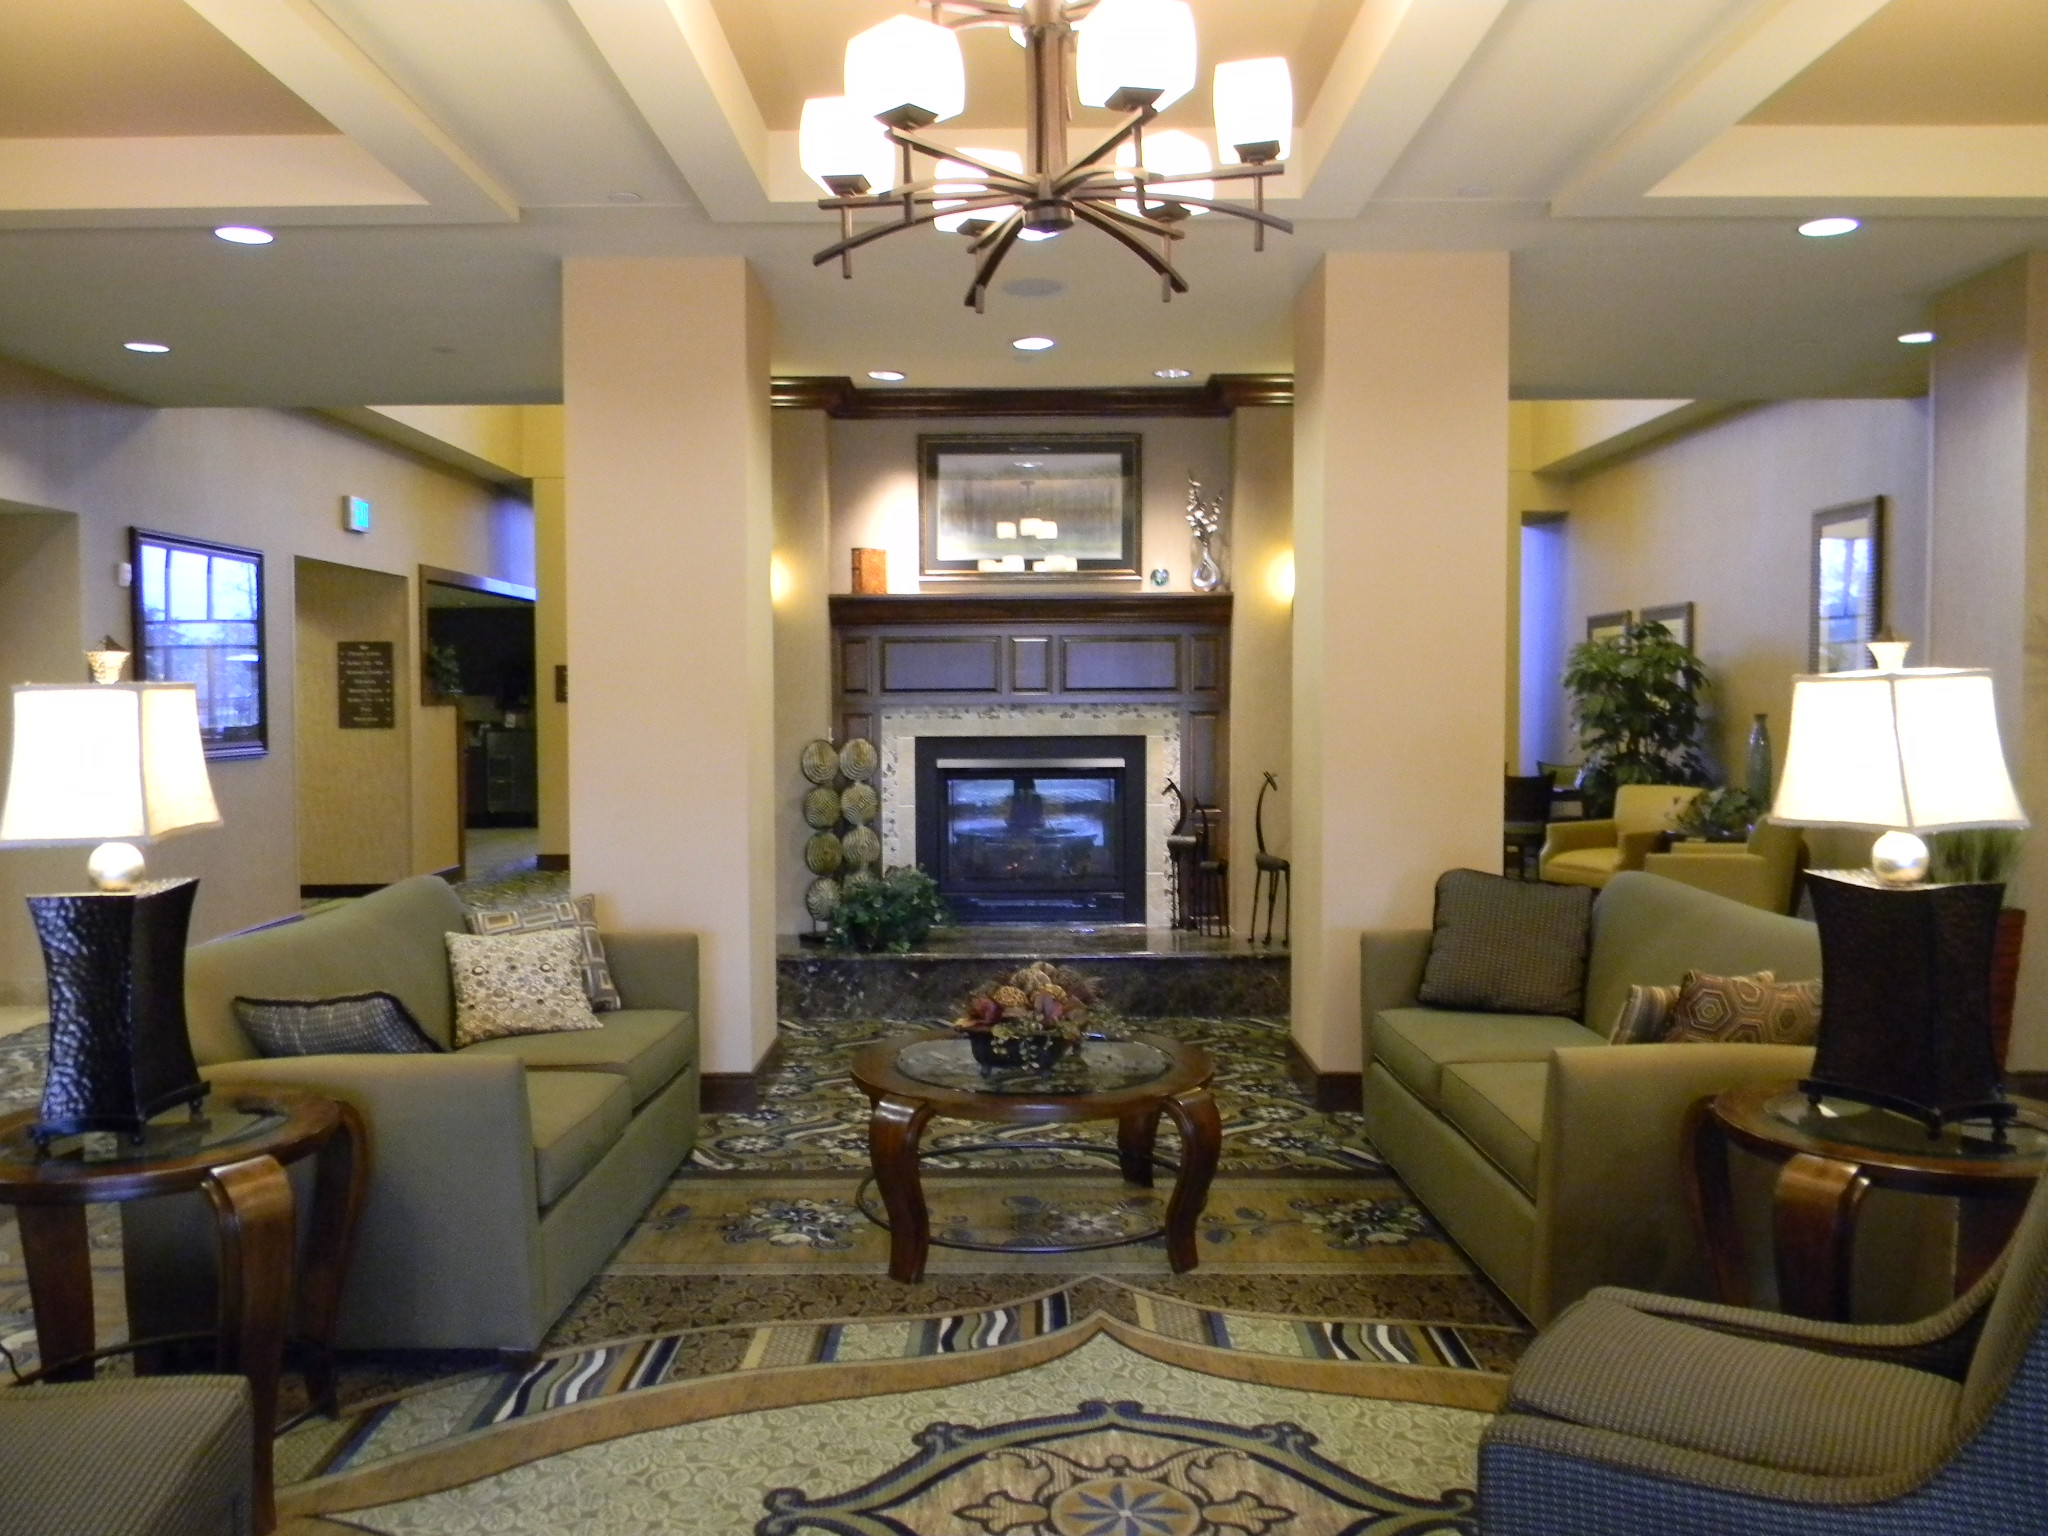 Lobby area in the Homewood Suites in St. Louis Park, MN